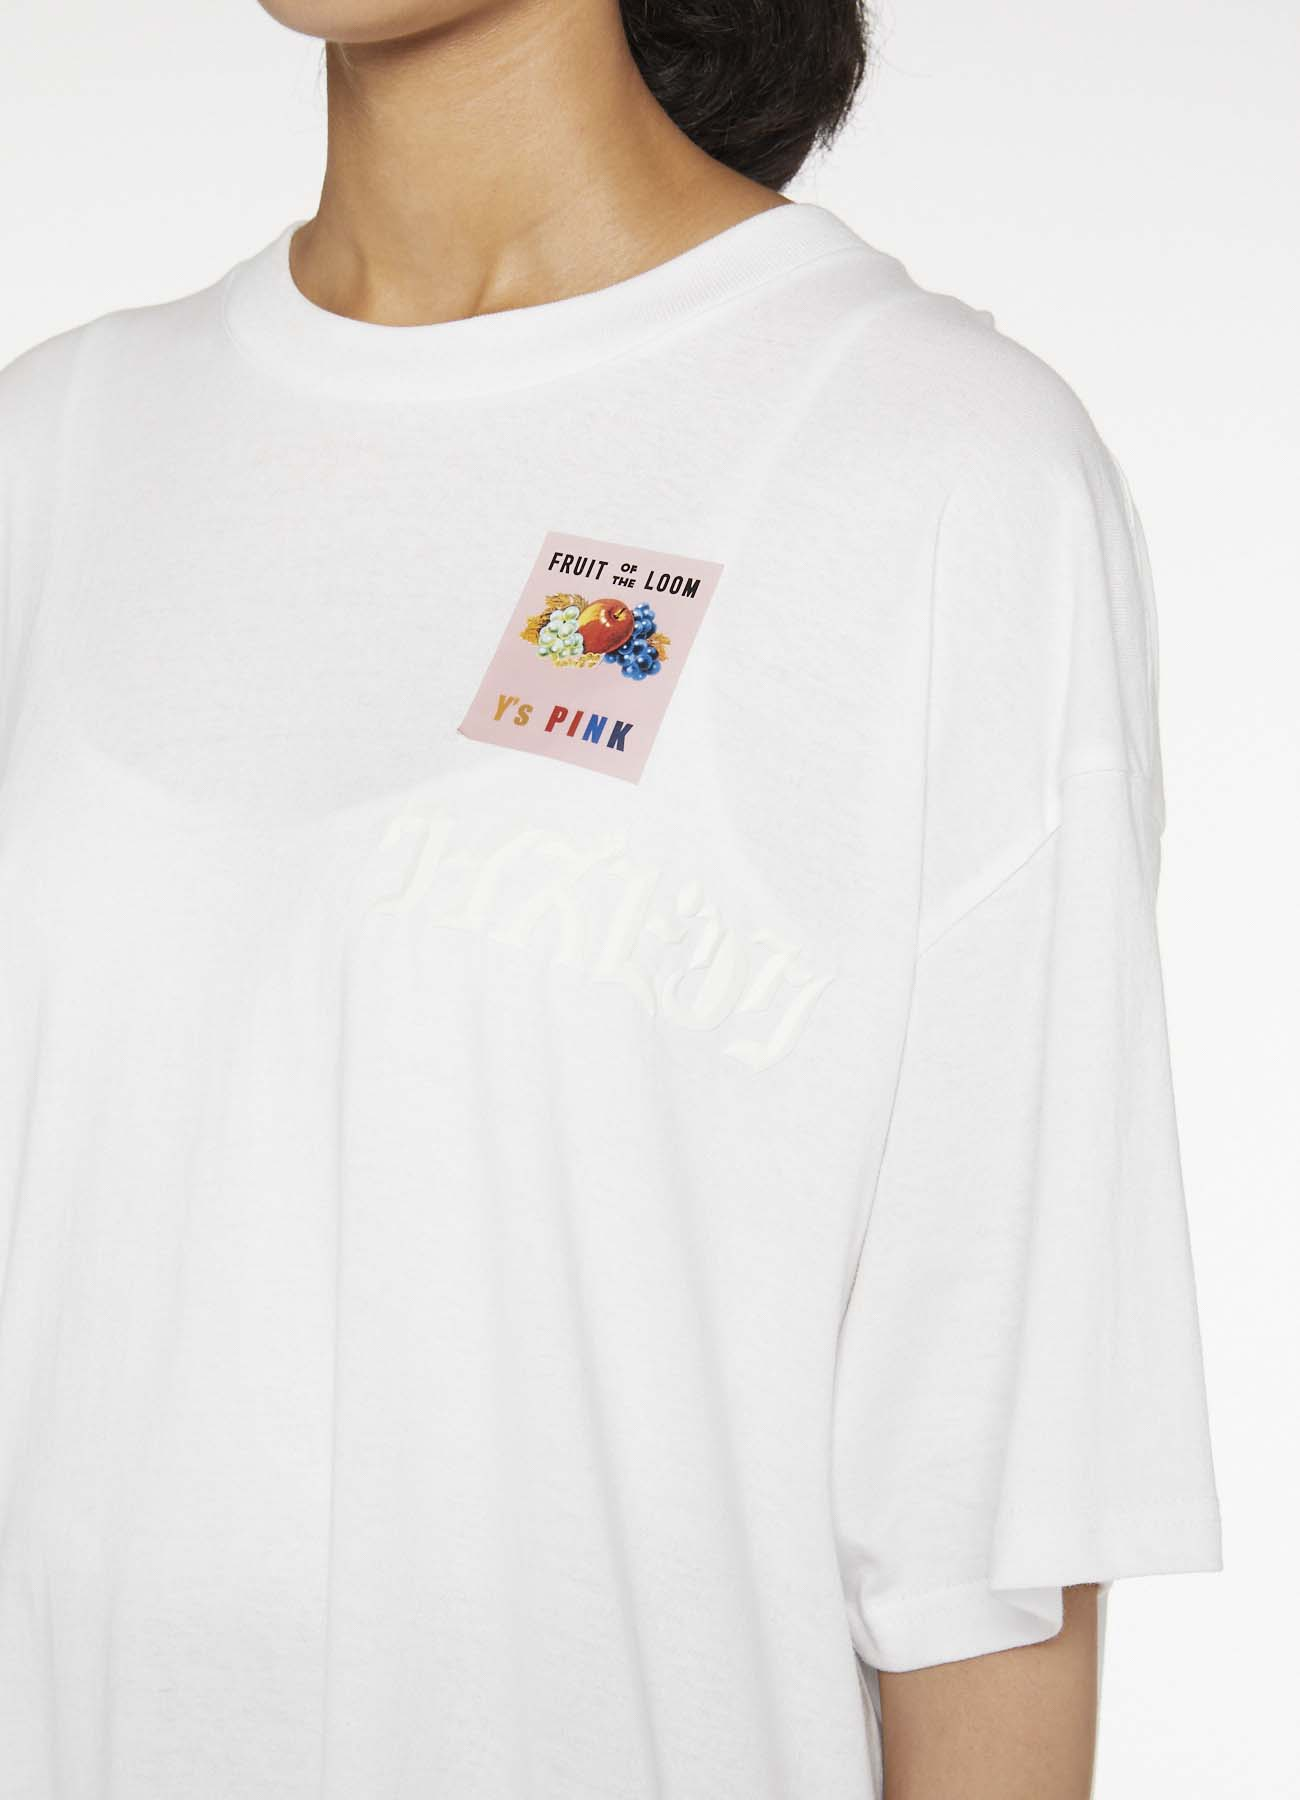 Y'sPINK x FRUIT OF THE LOOM COLLABORATION T-SHIRT